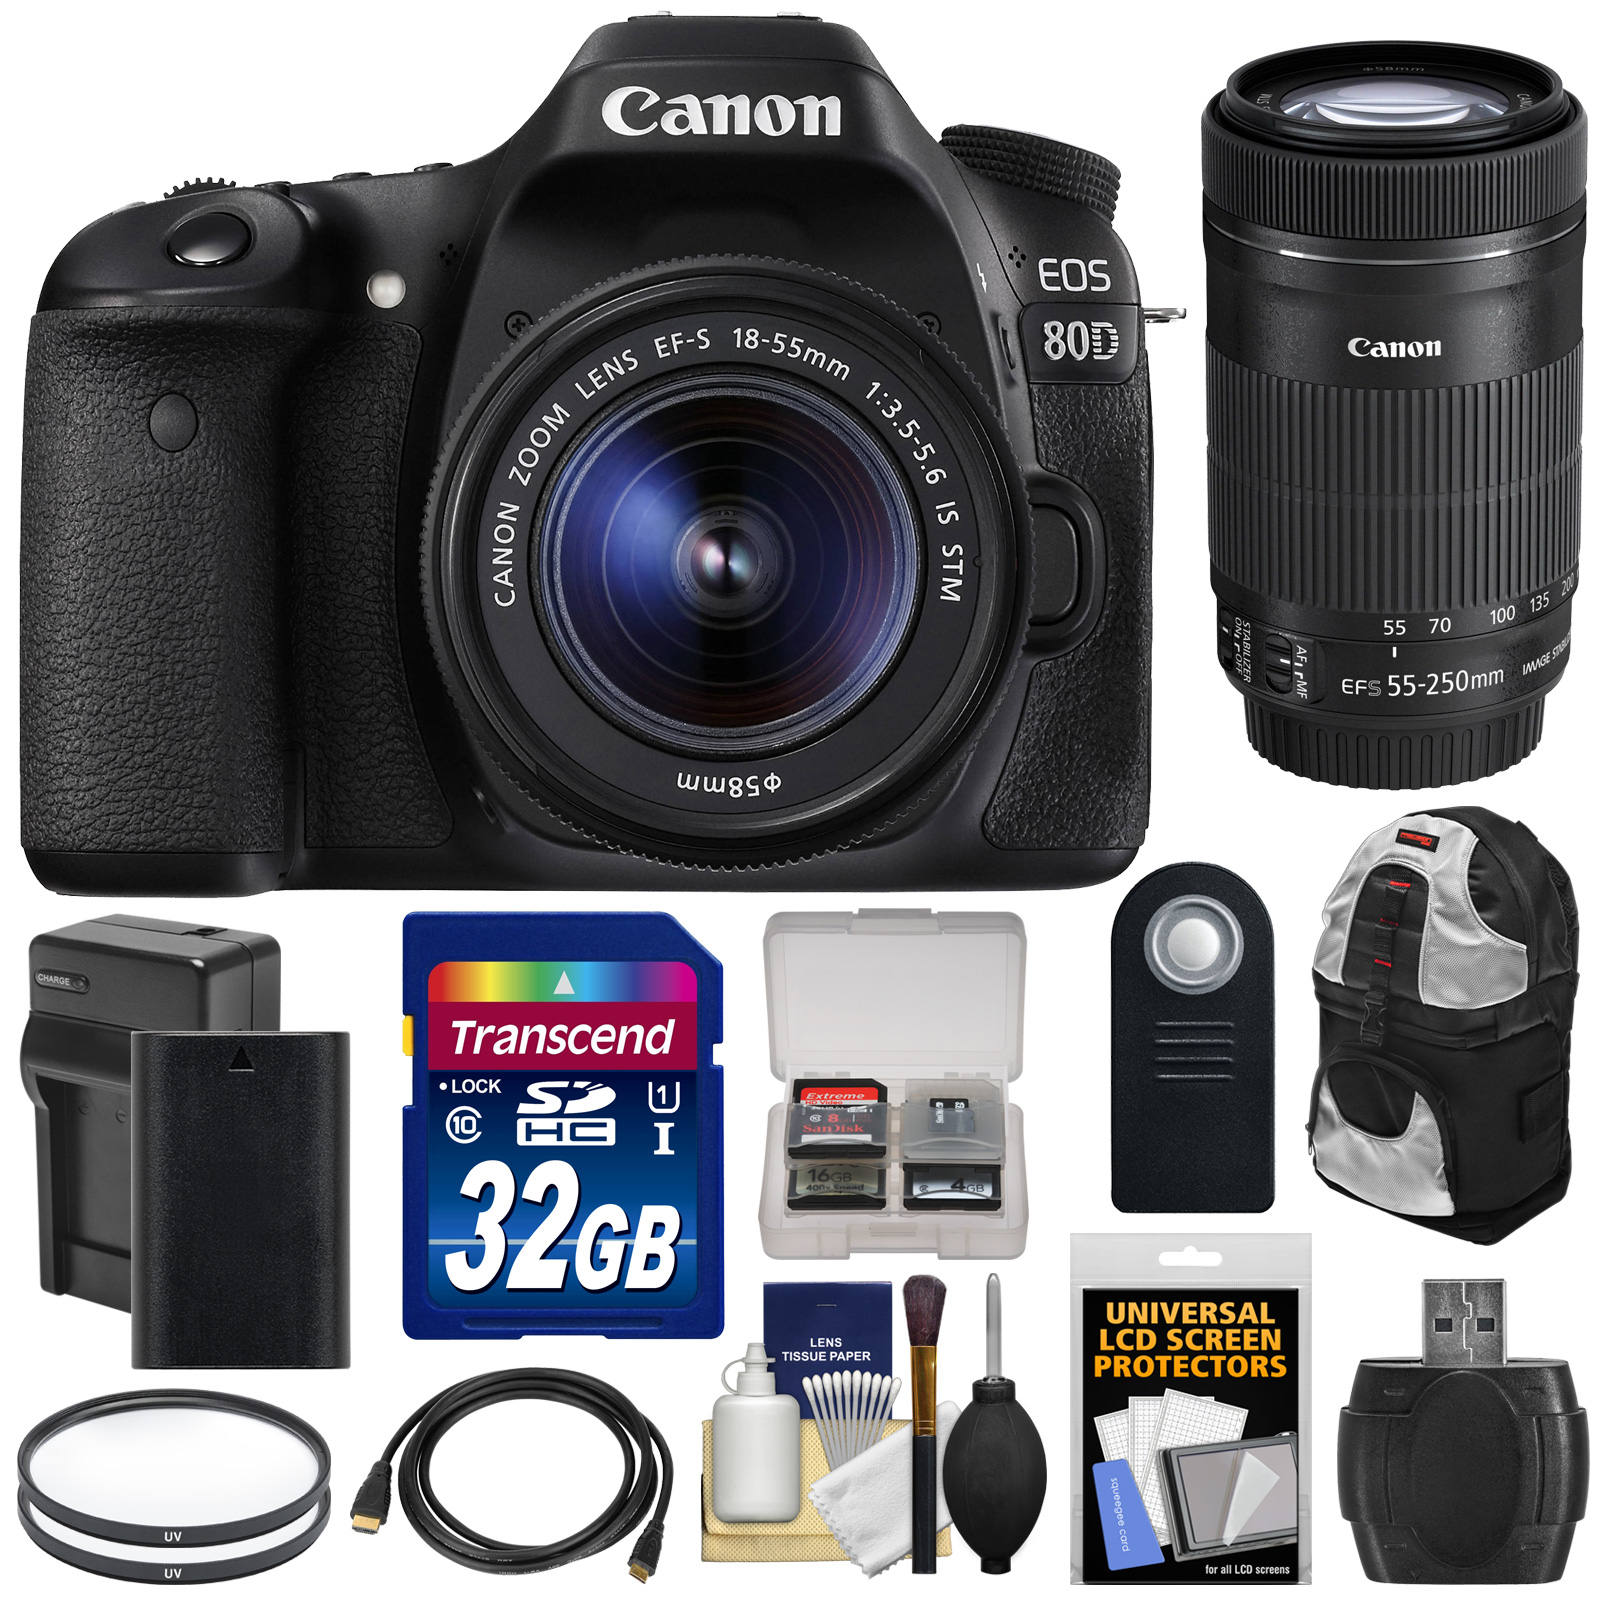 Canon EOS 80D Wi-Fi Digital SLR Camera & EF-S 18-55mm IS STM with 55-250mm IS STM Lens + 32GB Card + Battery & Charger +... by Canon